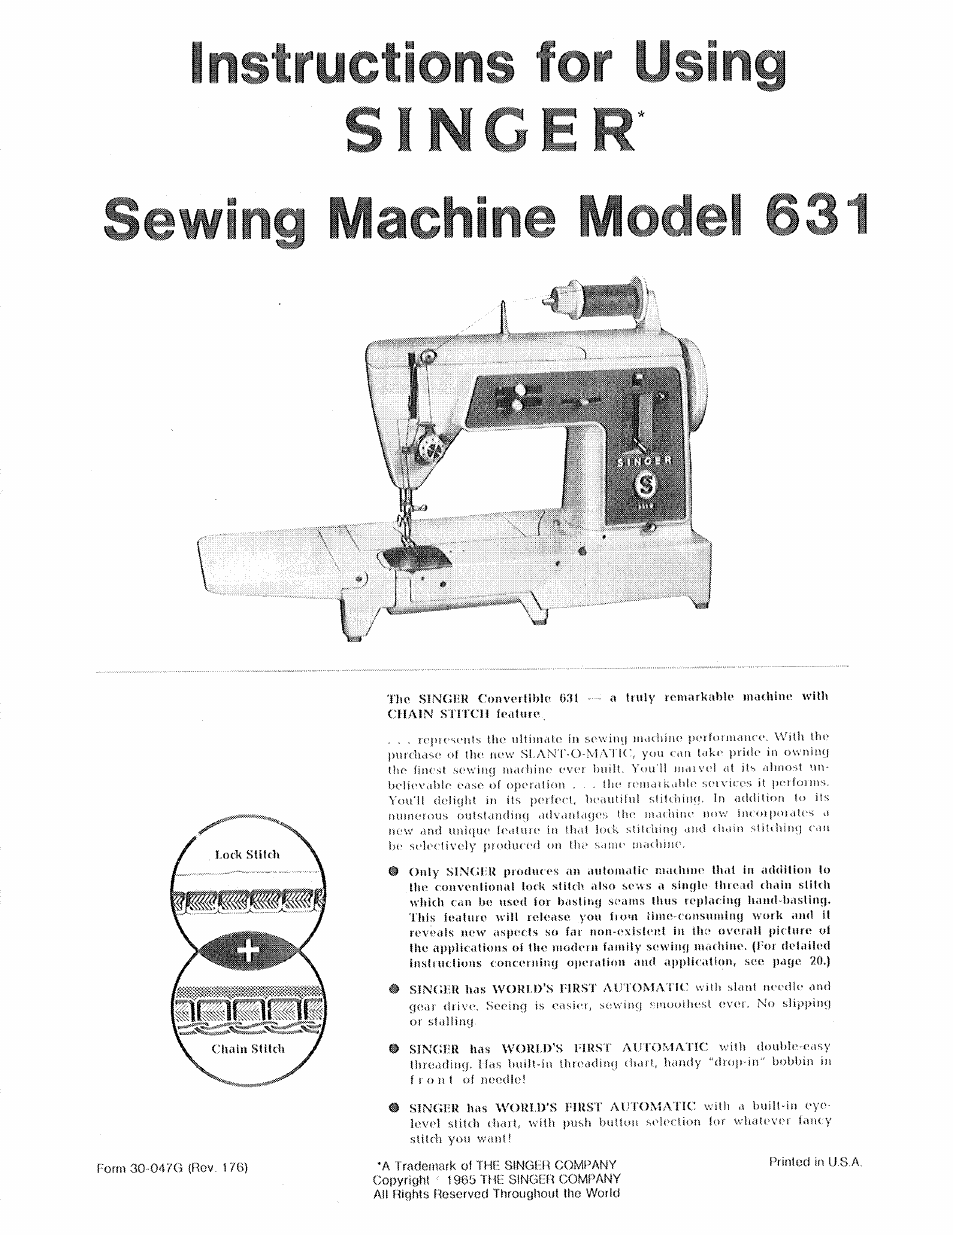 SINGER 631 User Manual | 52 pages